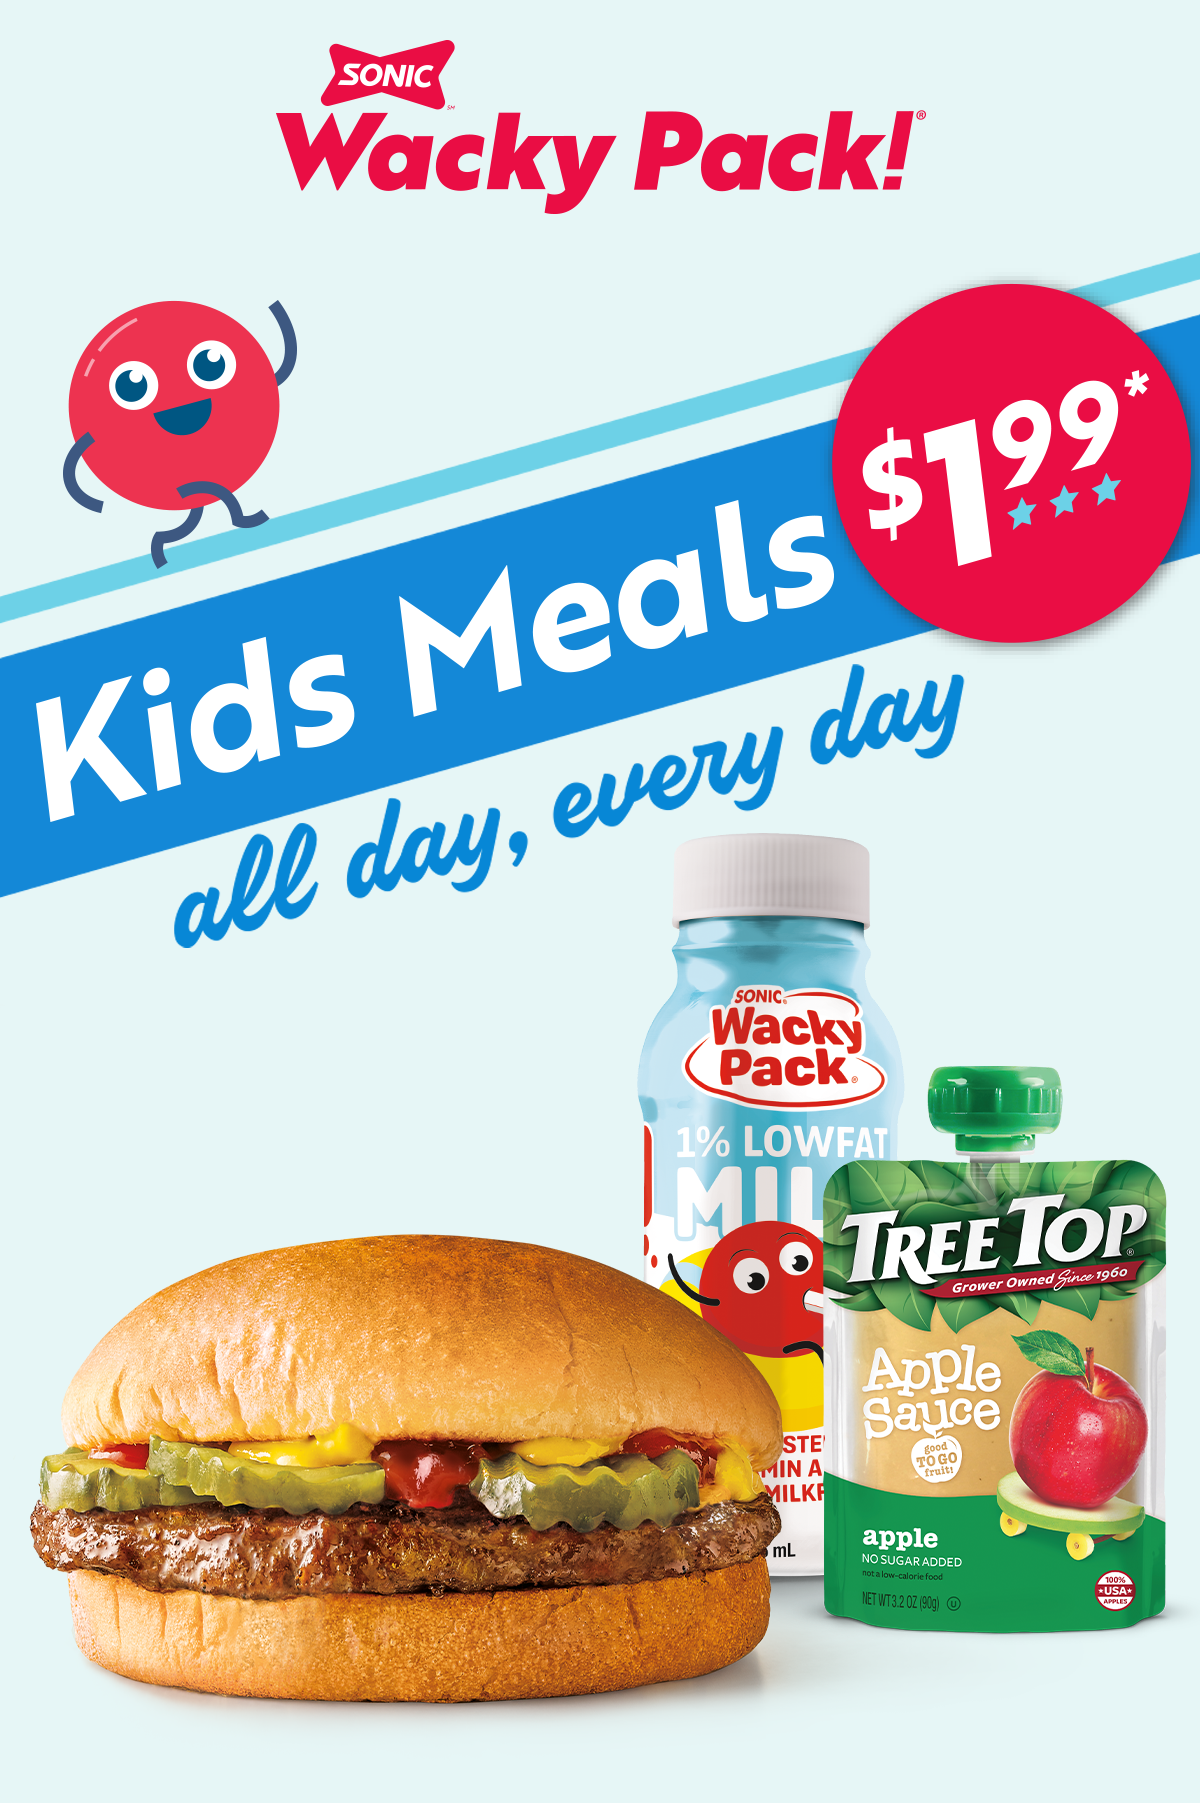 $1.99 Kids Meals all day, every day